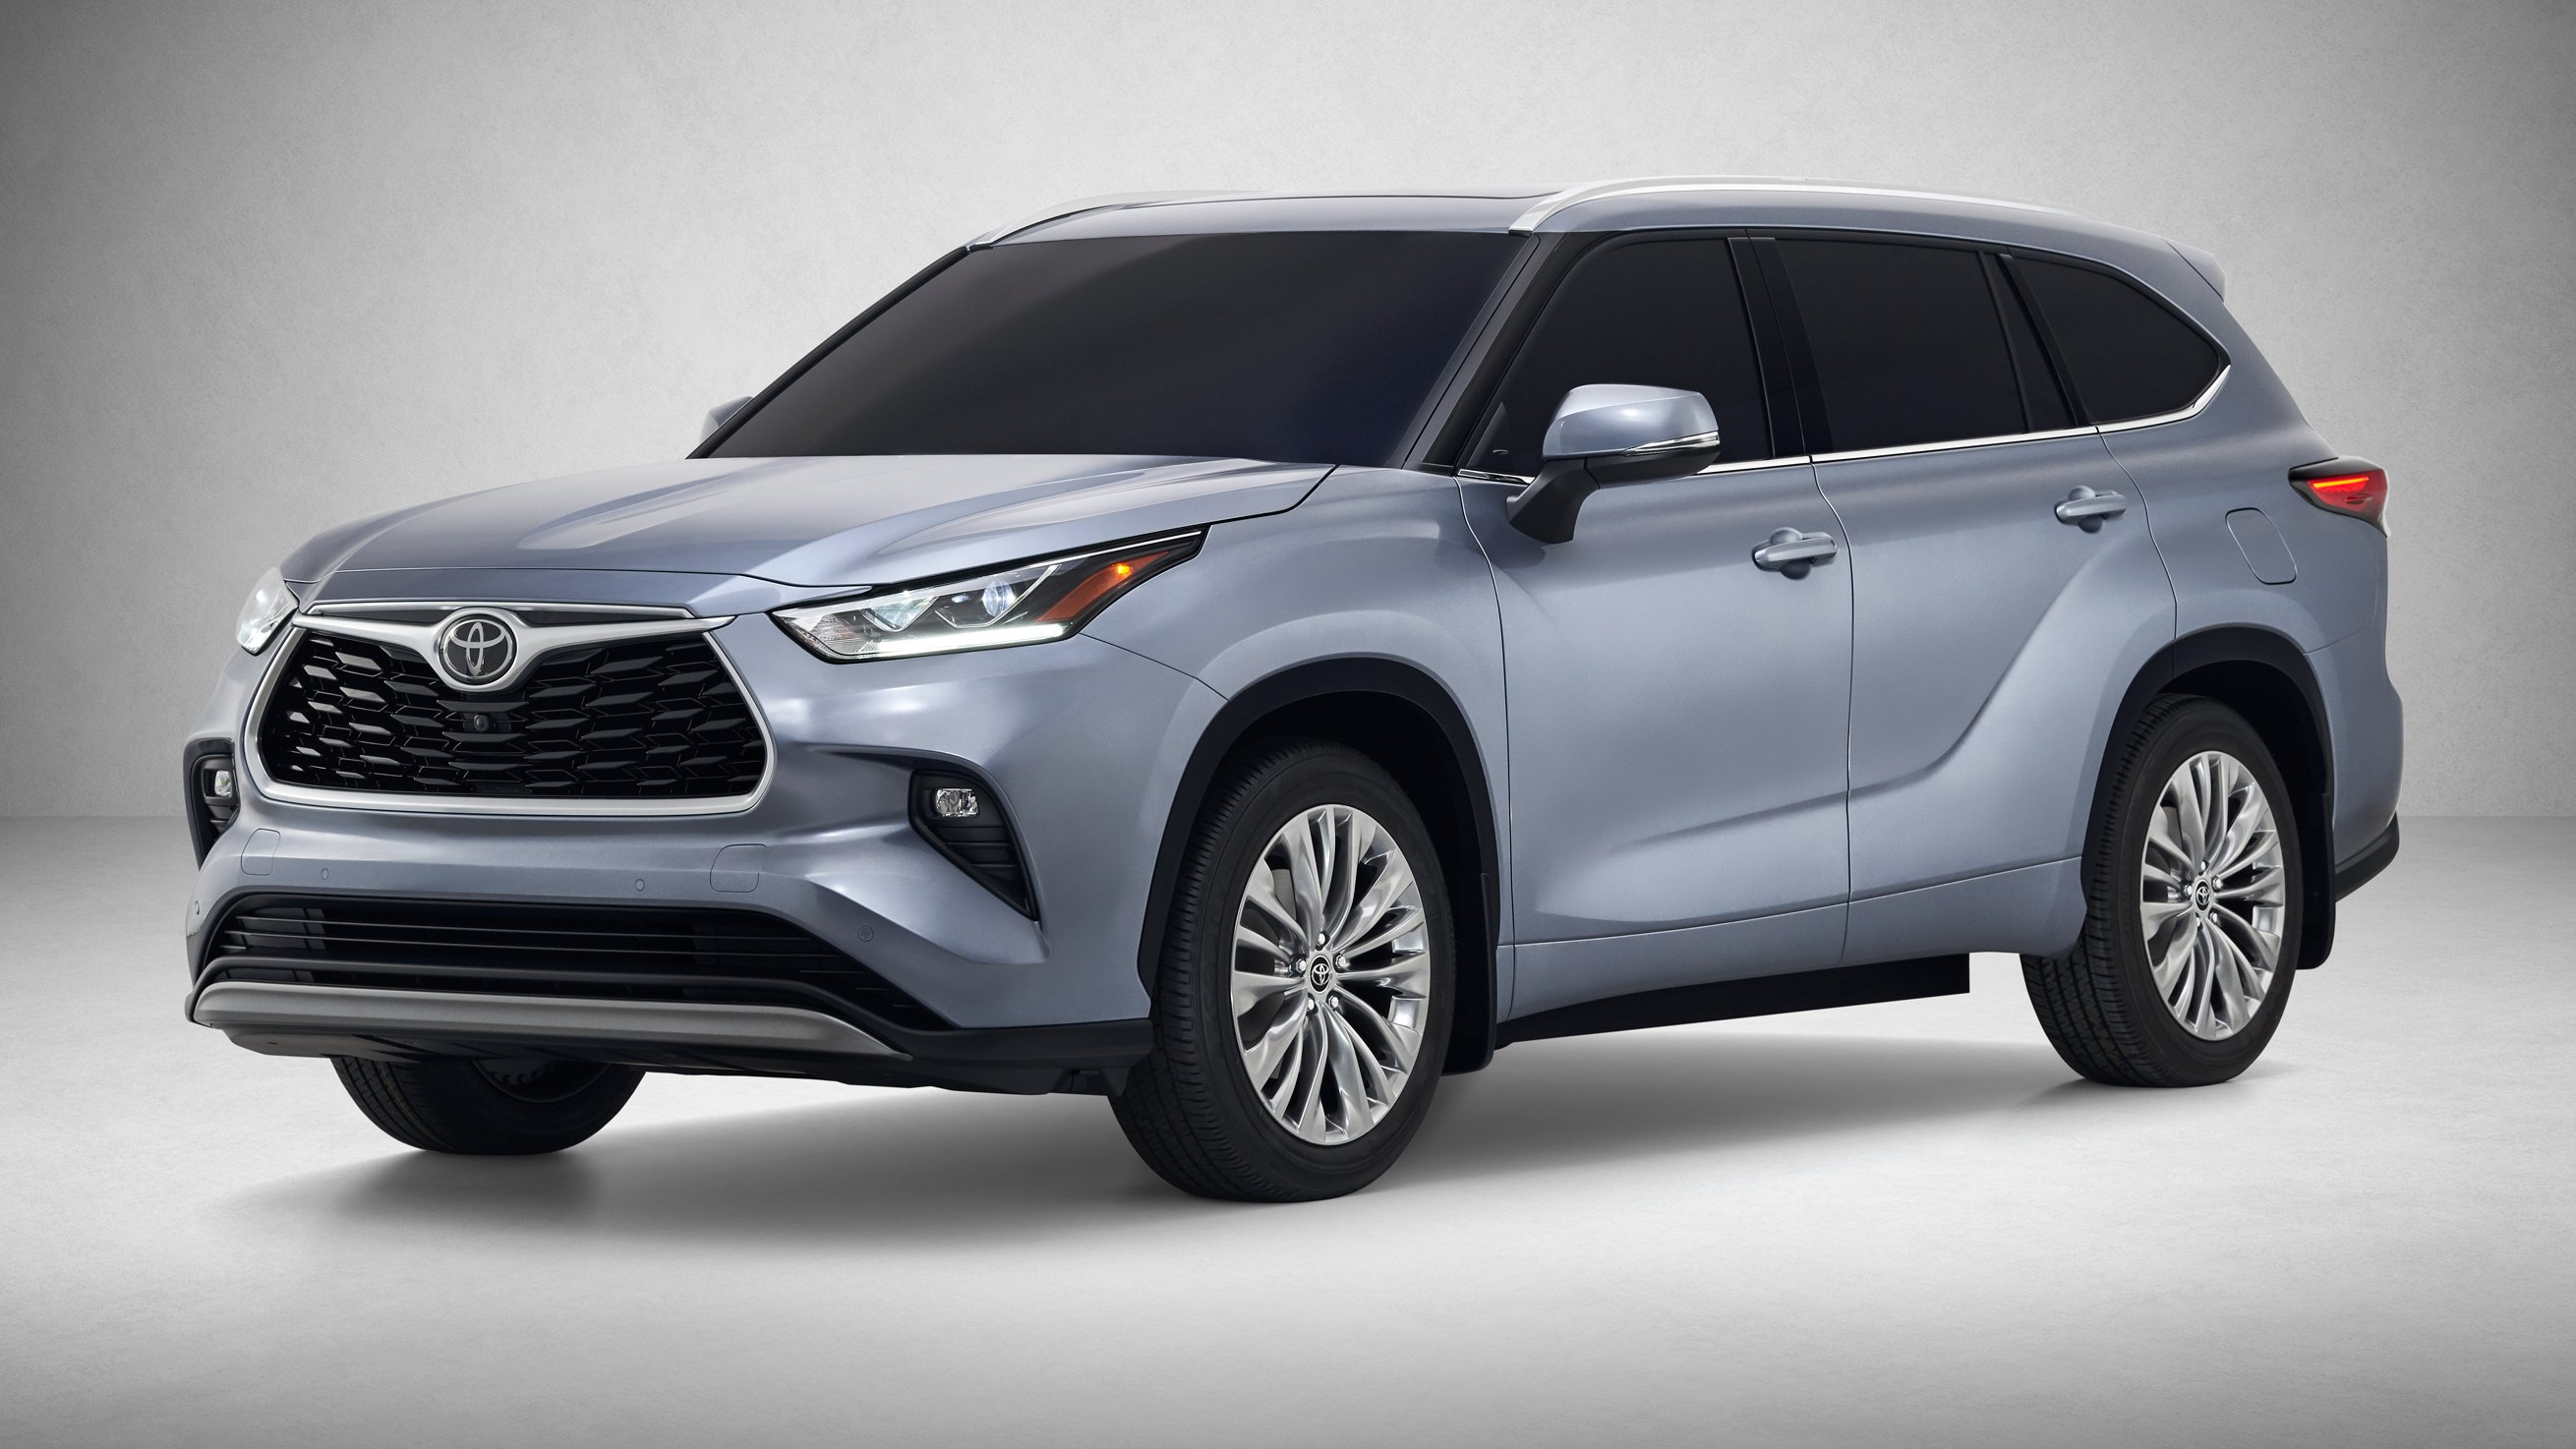 2020 Toyota Kluger Unveiled Australia To Get Hybrid Power